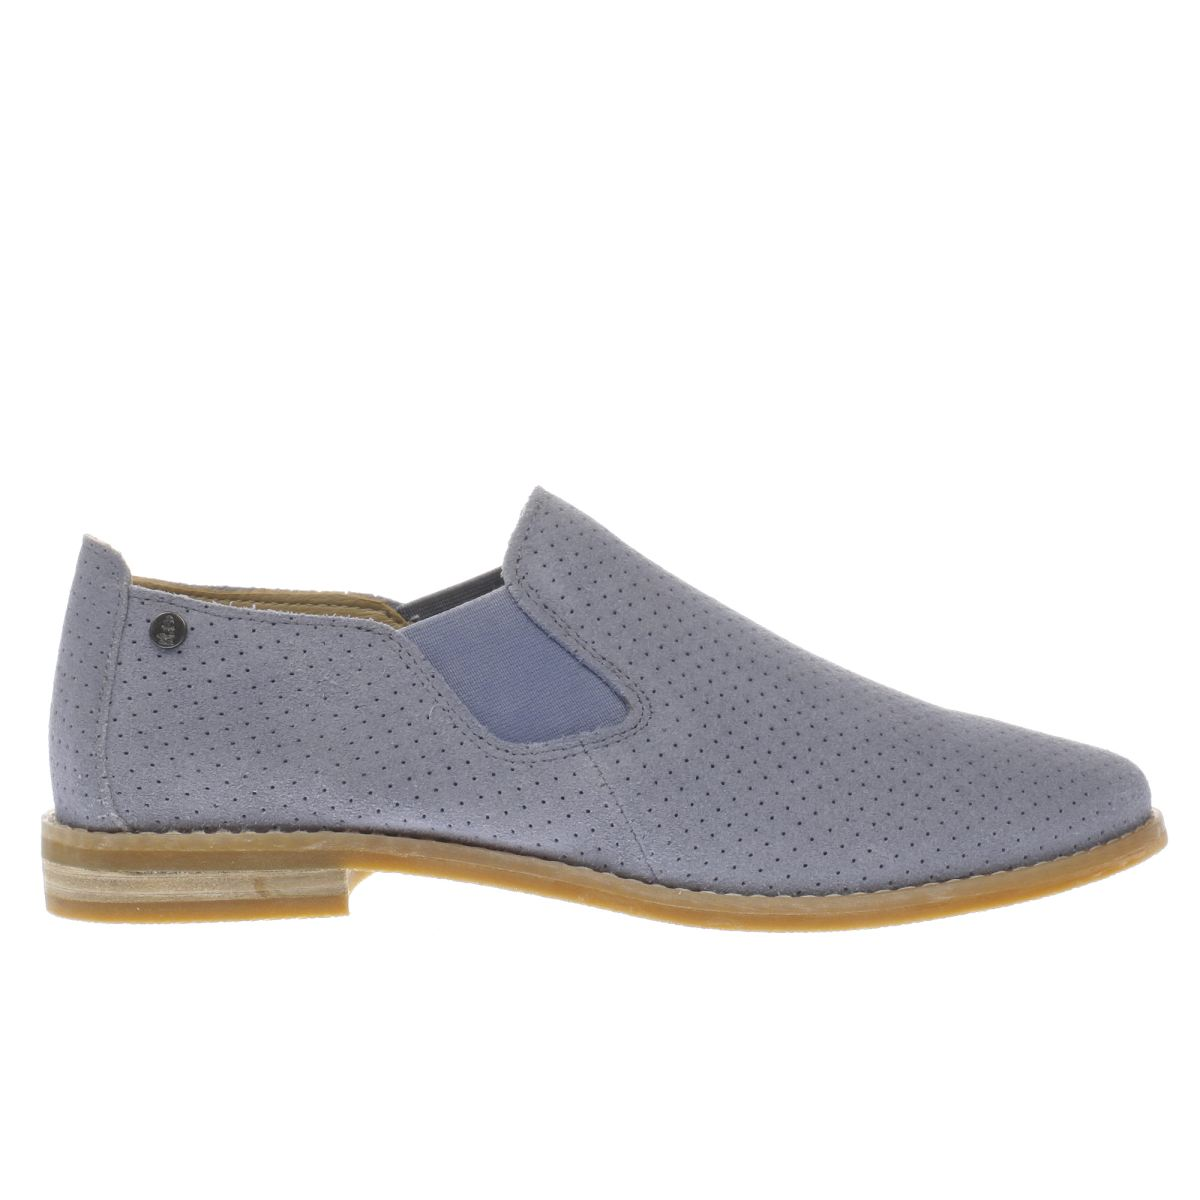 Hush Puppies Hush Puppies Pale Blue Analise Clever Flats